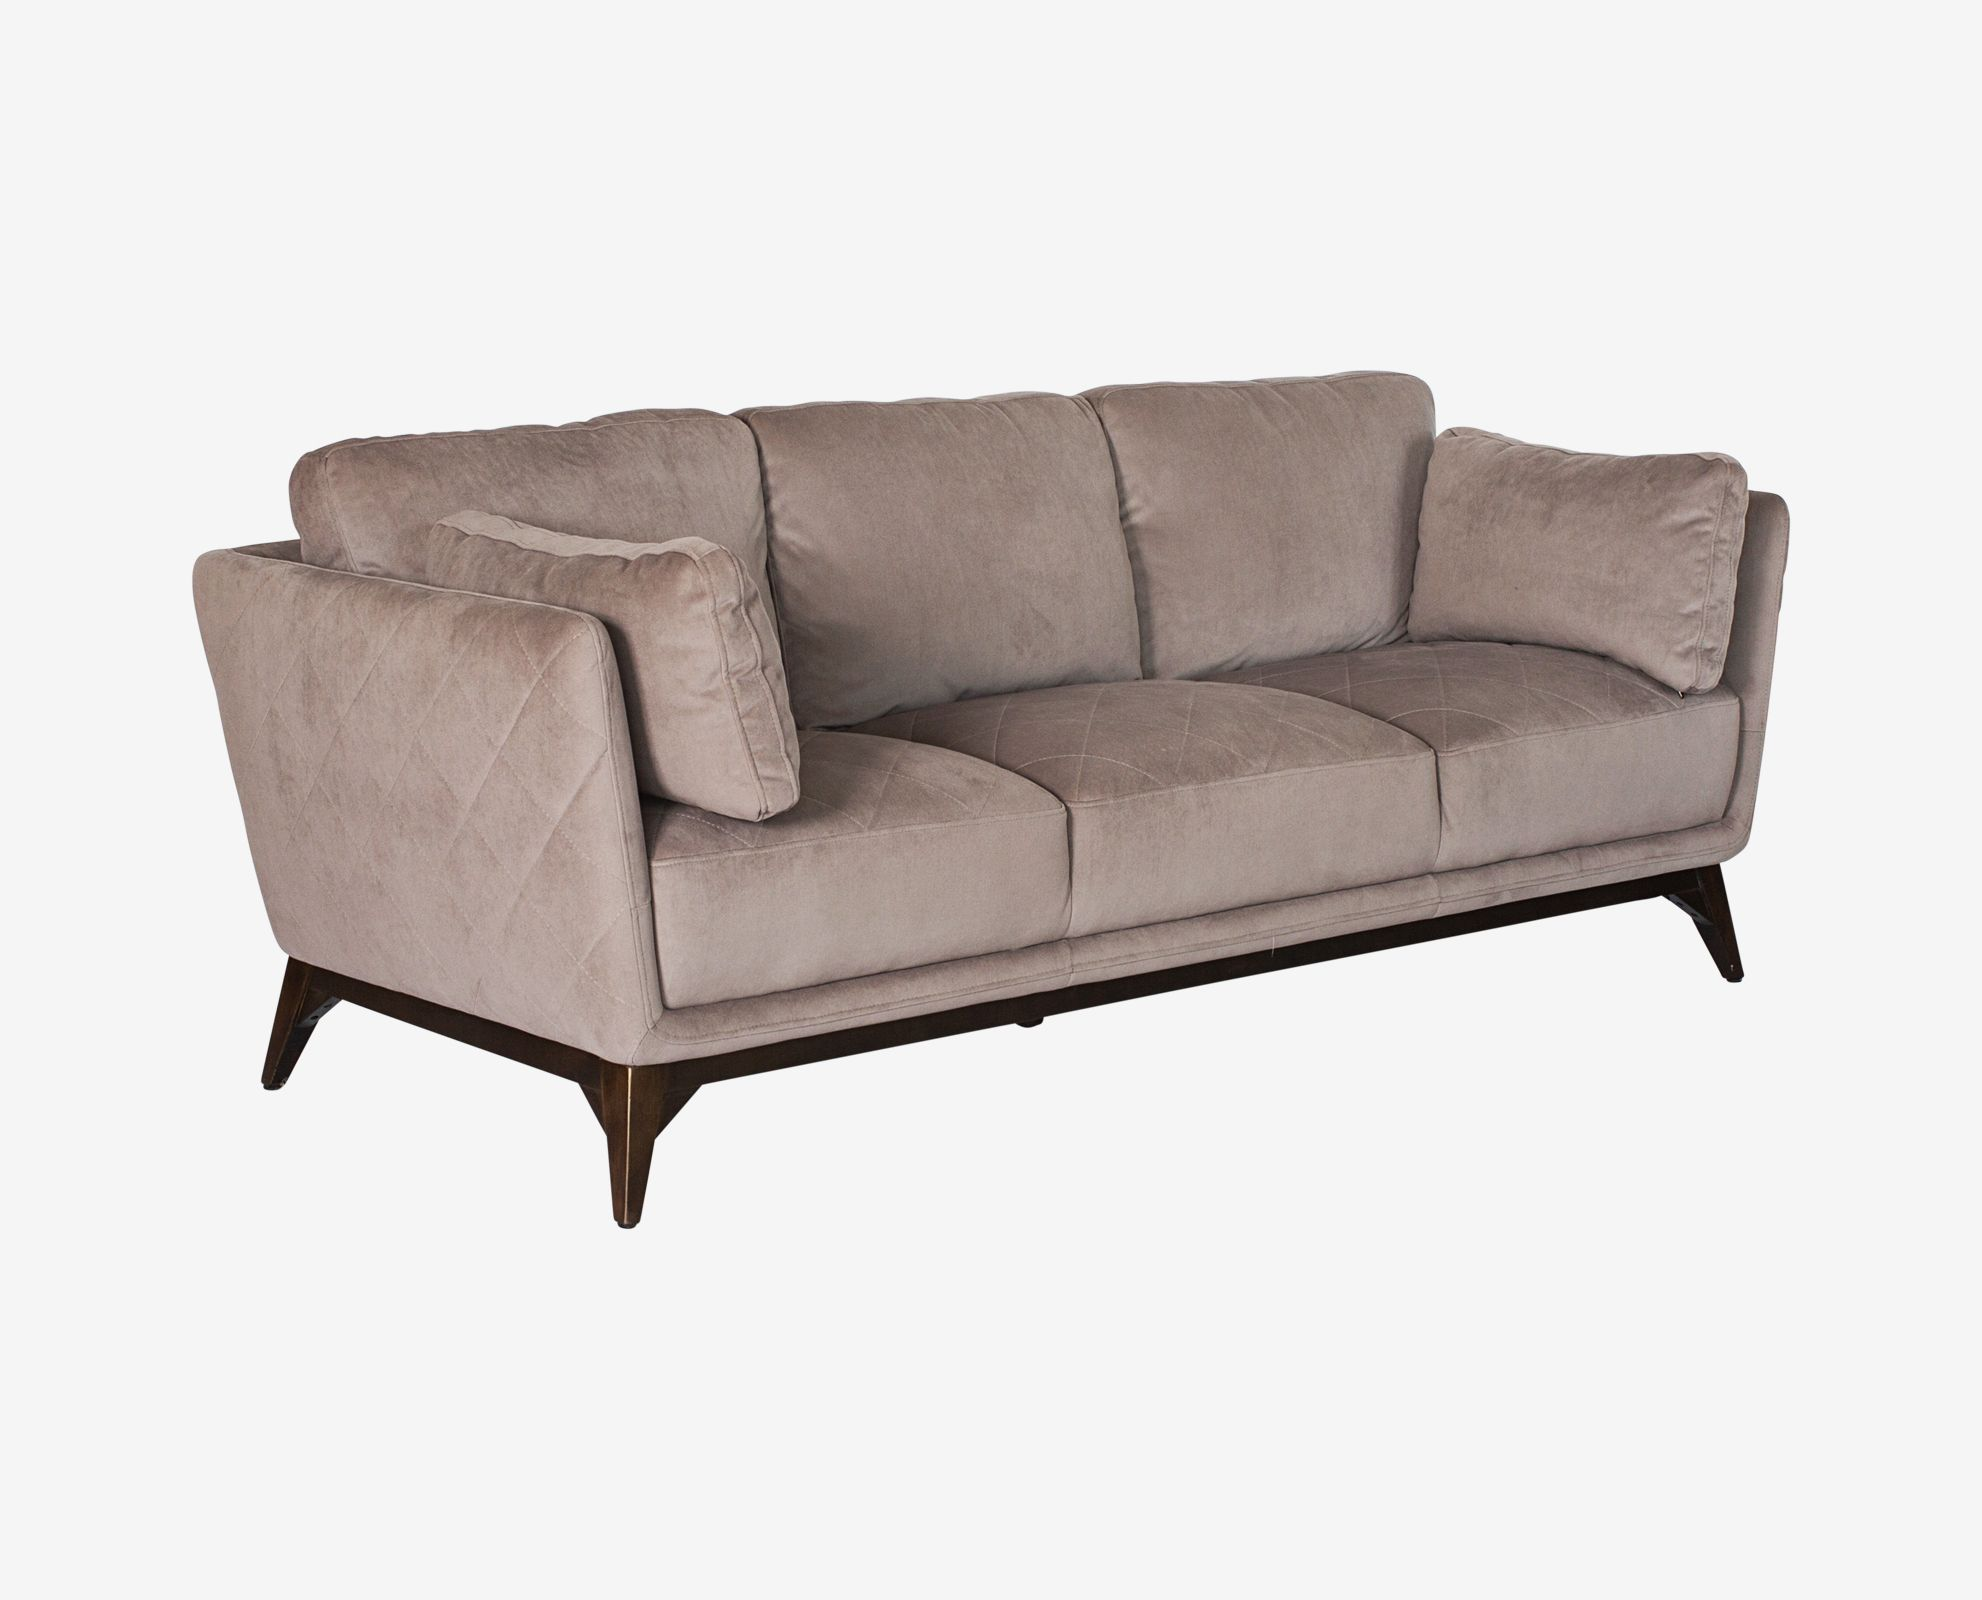 Modern Quilted Sofa Dania The Ferula Sofa Has A Welcoming Feel With Angled